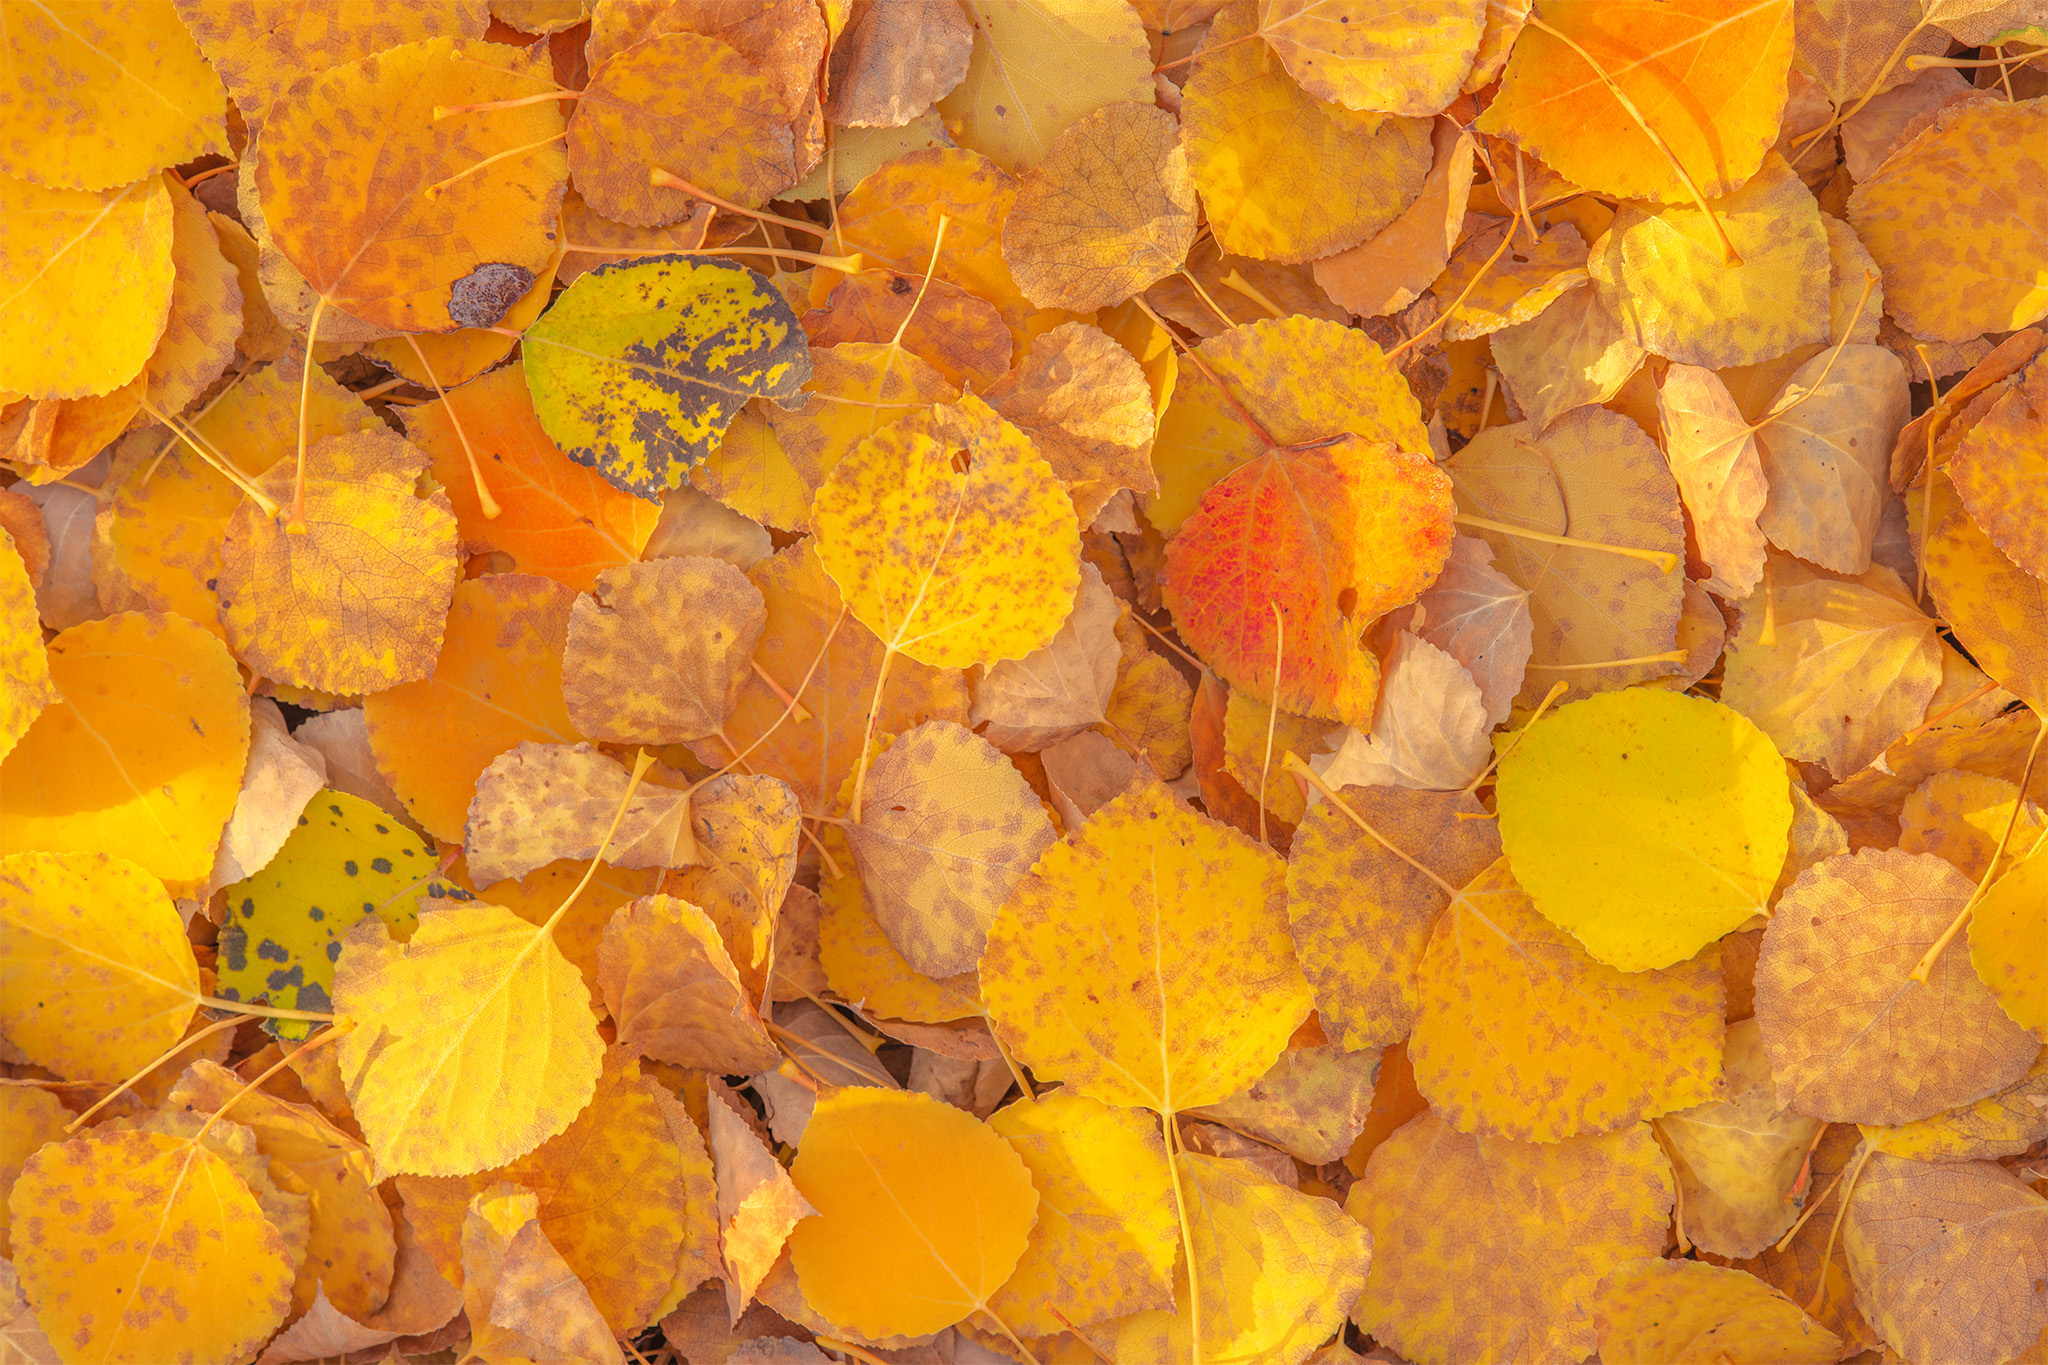 An abstract landscape photograph of different coloured aspen leaves covering the ground